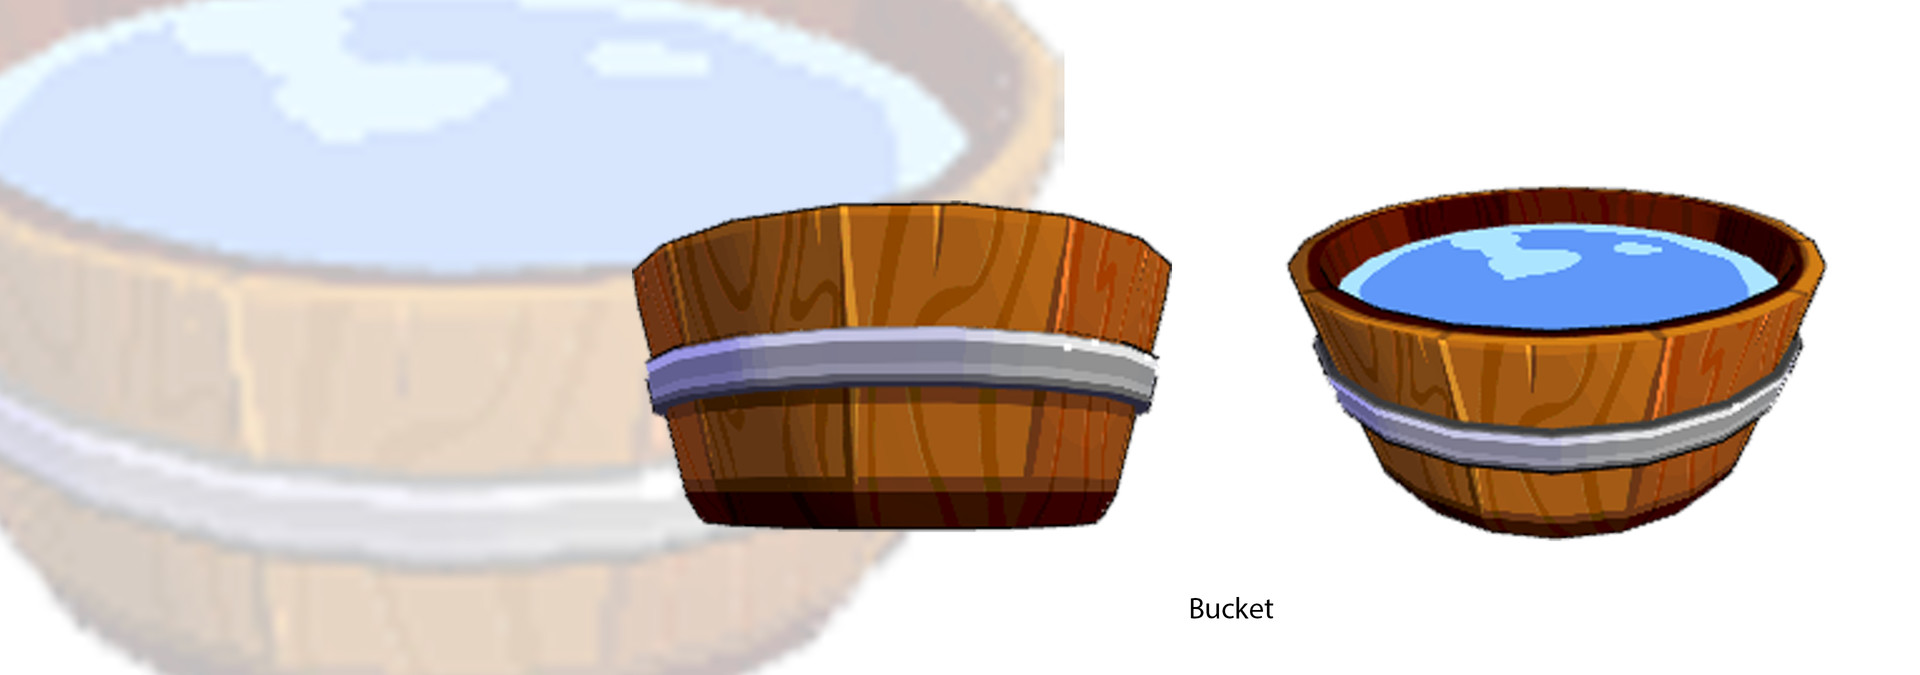 Bucket Model and texture